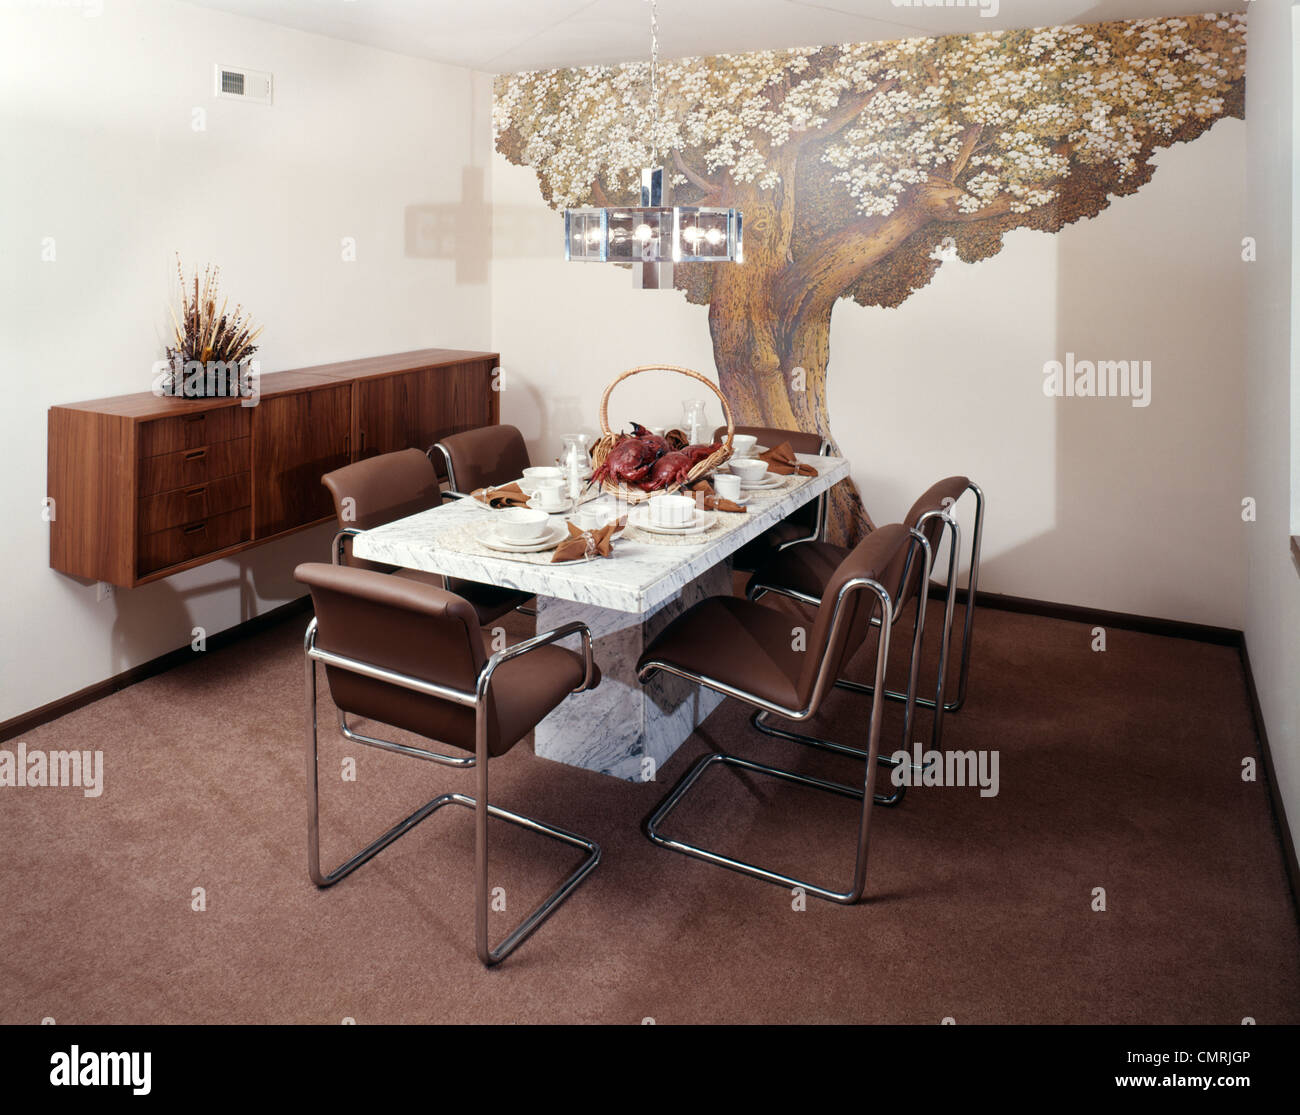 1970s DINING ROOM TABLE CHAIRS WALL DECOR MURAL OF TREE - Stock Image